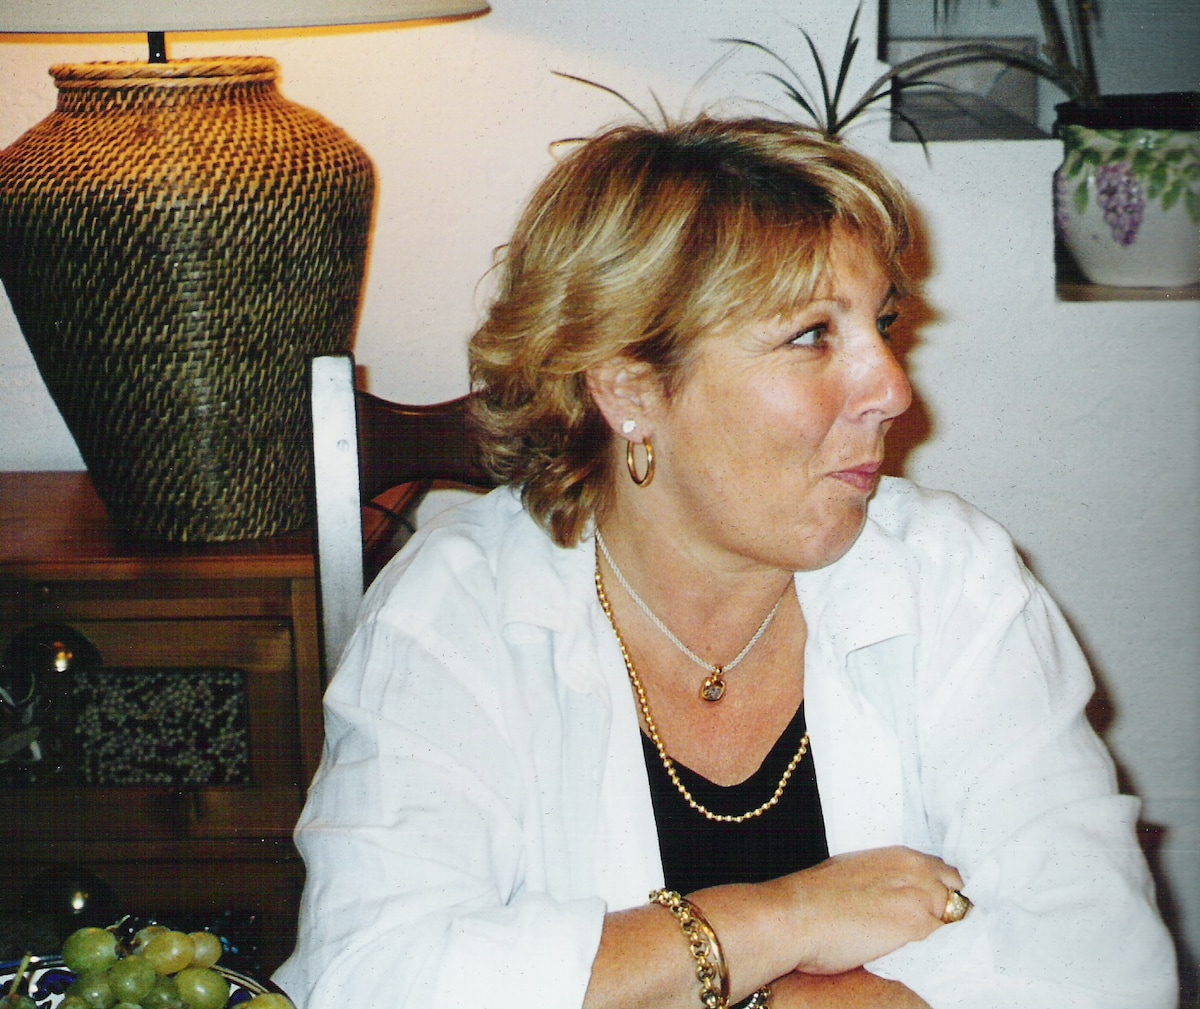 Martine from Porto-Vecchio